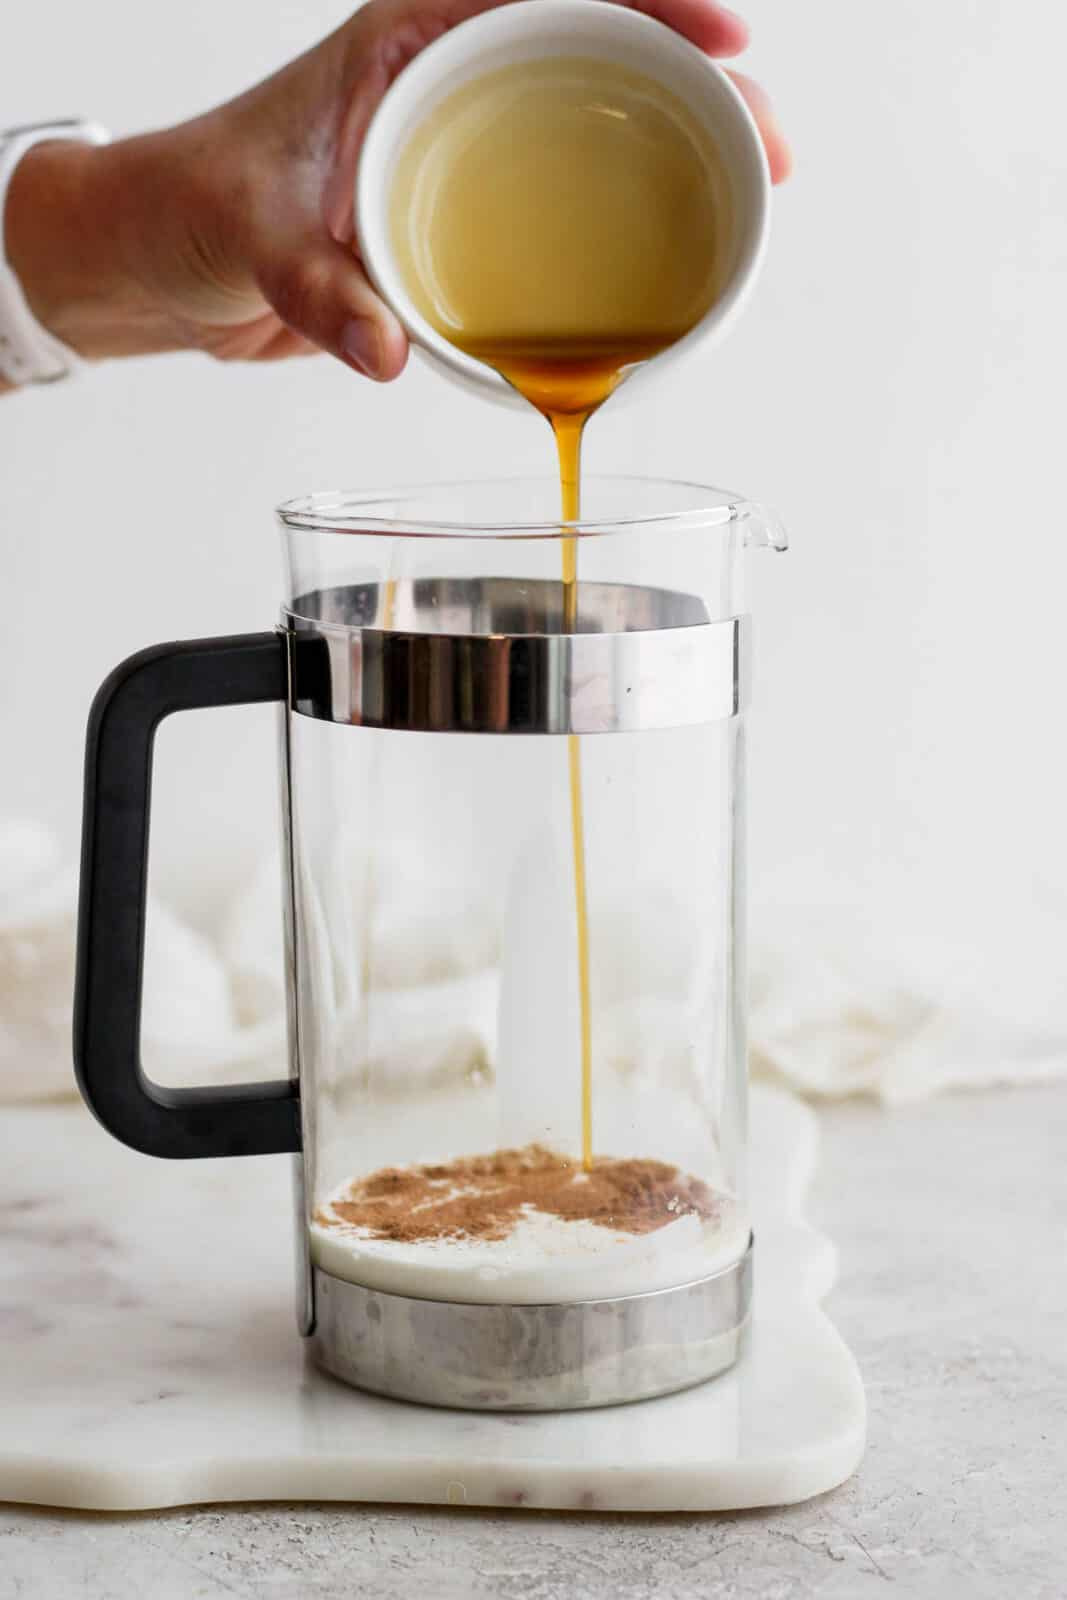 Someone pouring maple syrup into a French press.